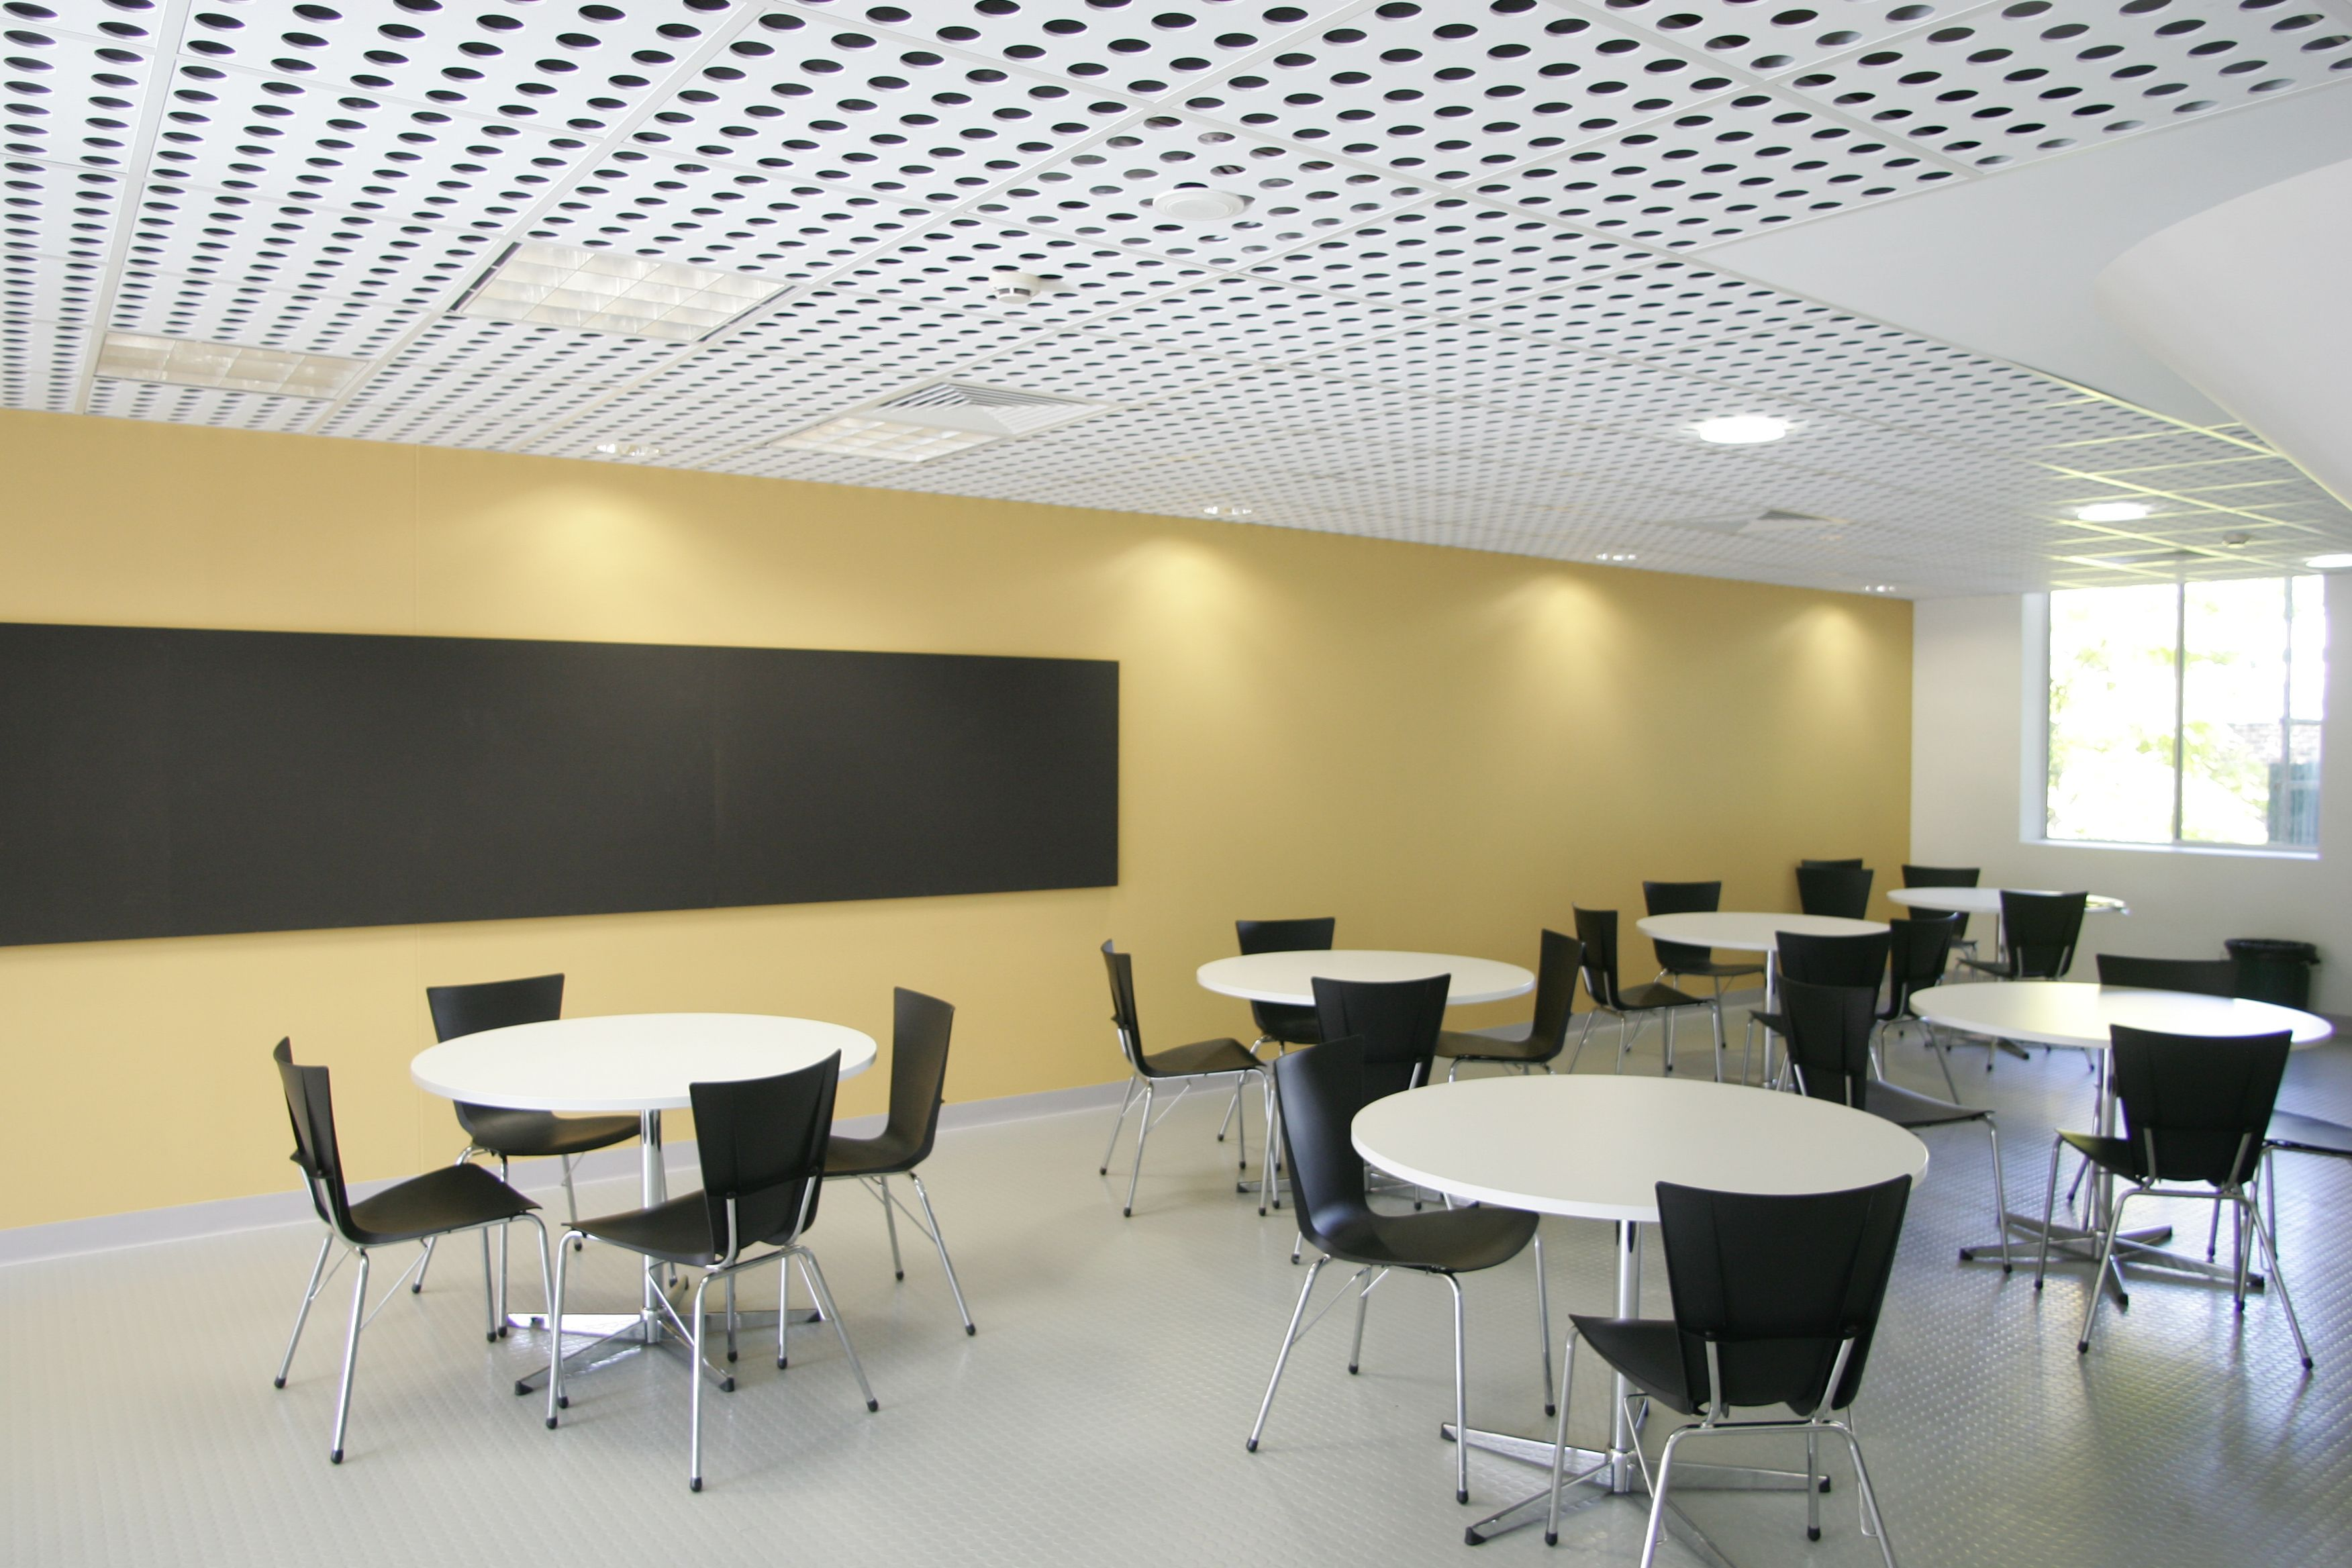 Drop in ceiling tiles made from perforated panels substrate fibre drop in ceiling tiles made from perforated panels substrate fibre cement dailygadgetfo Choice Image